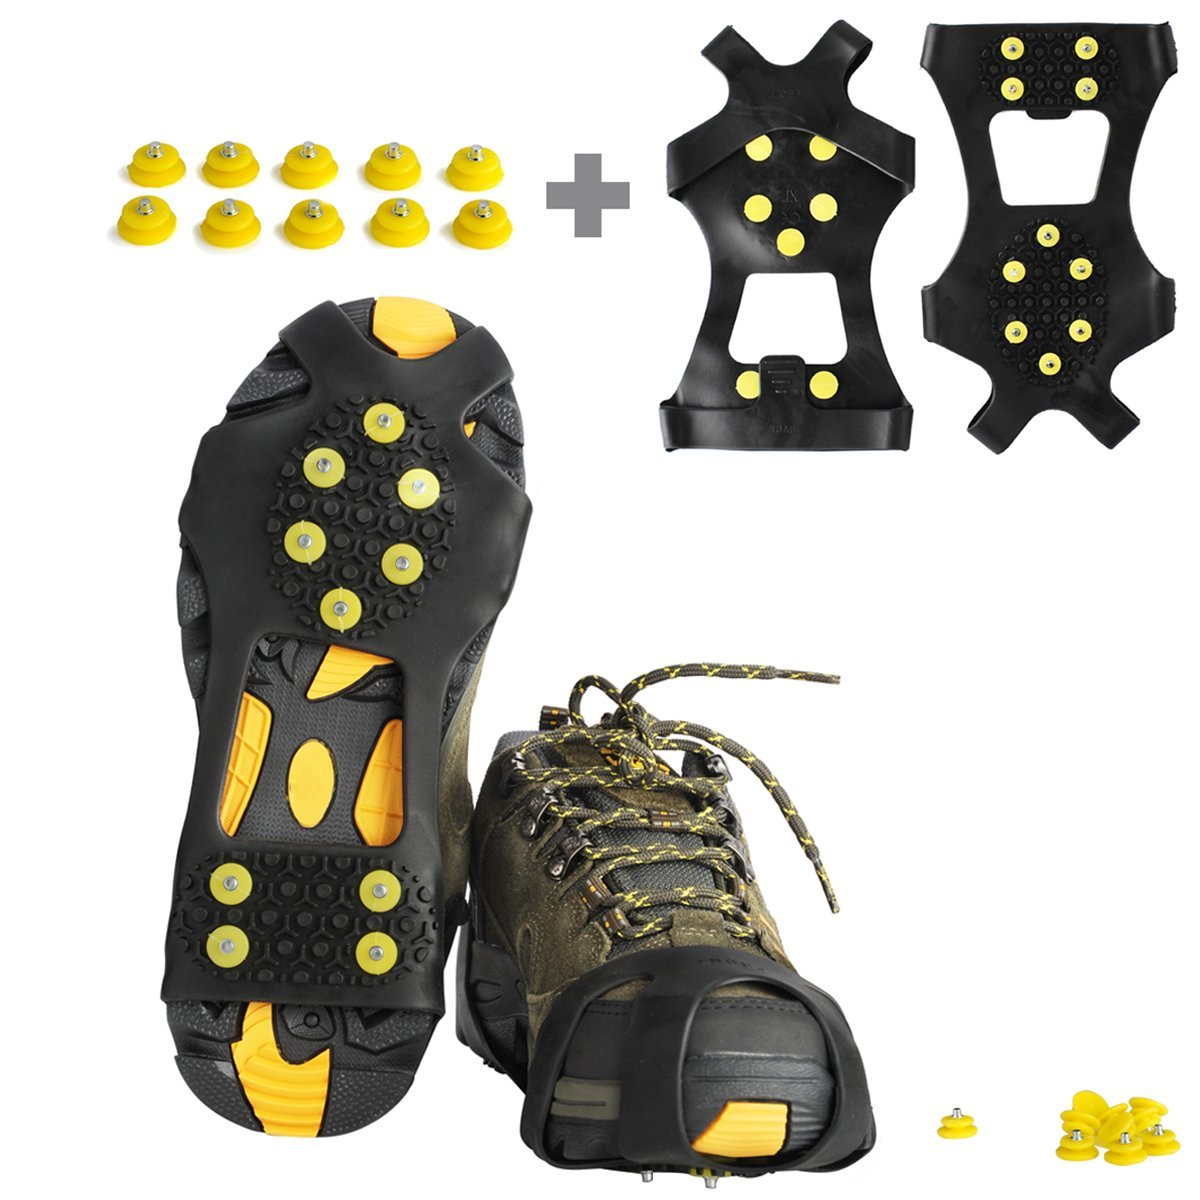 b0c44701220 Willceal Ice Cleats, Ice Grippers Traction Cleats Shoes and Boots Rubber  Snow Shoe Spikes Crampons with 10 Steel Studs Cleats Prevent Outdoor ...